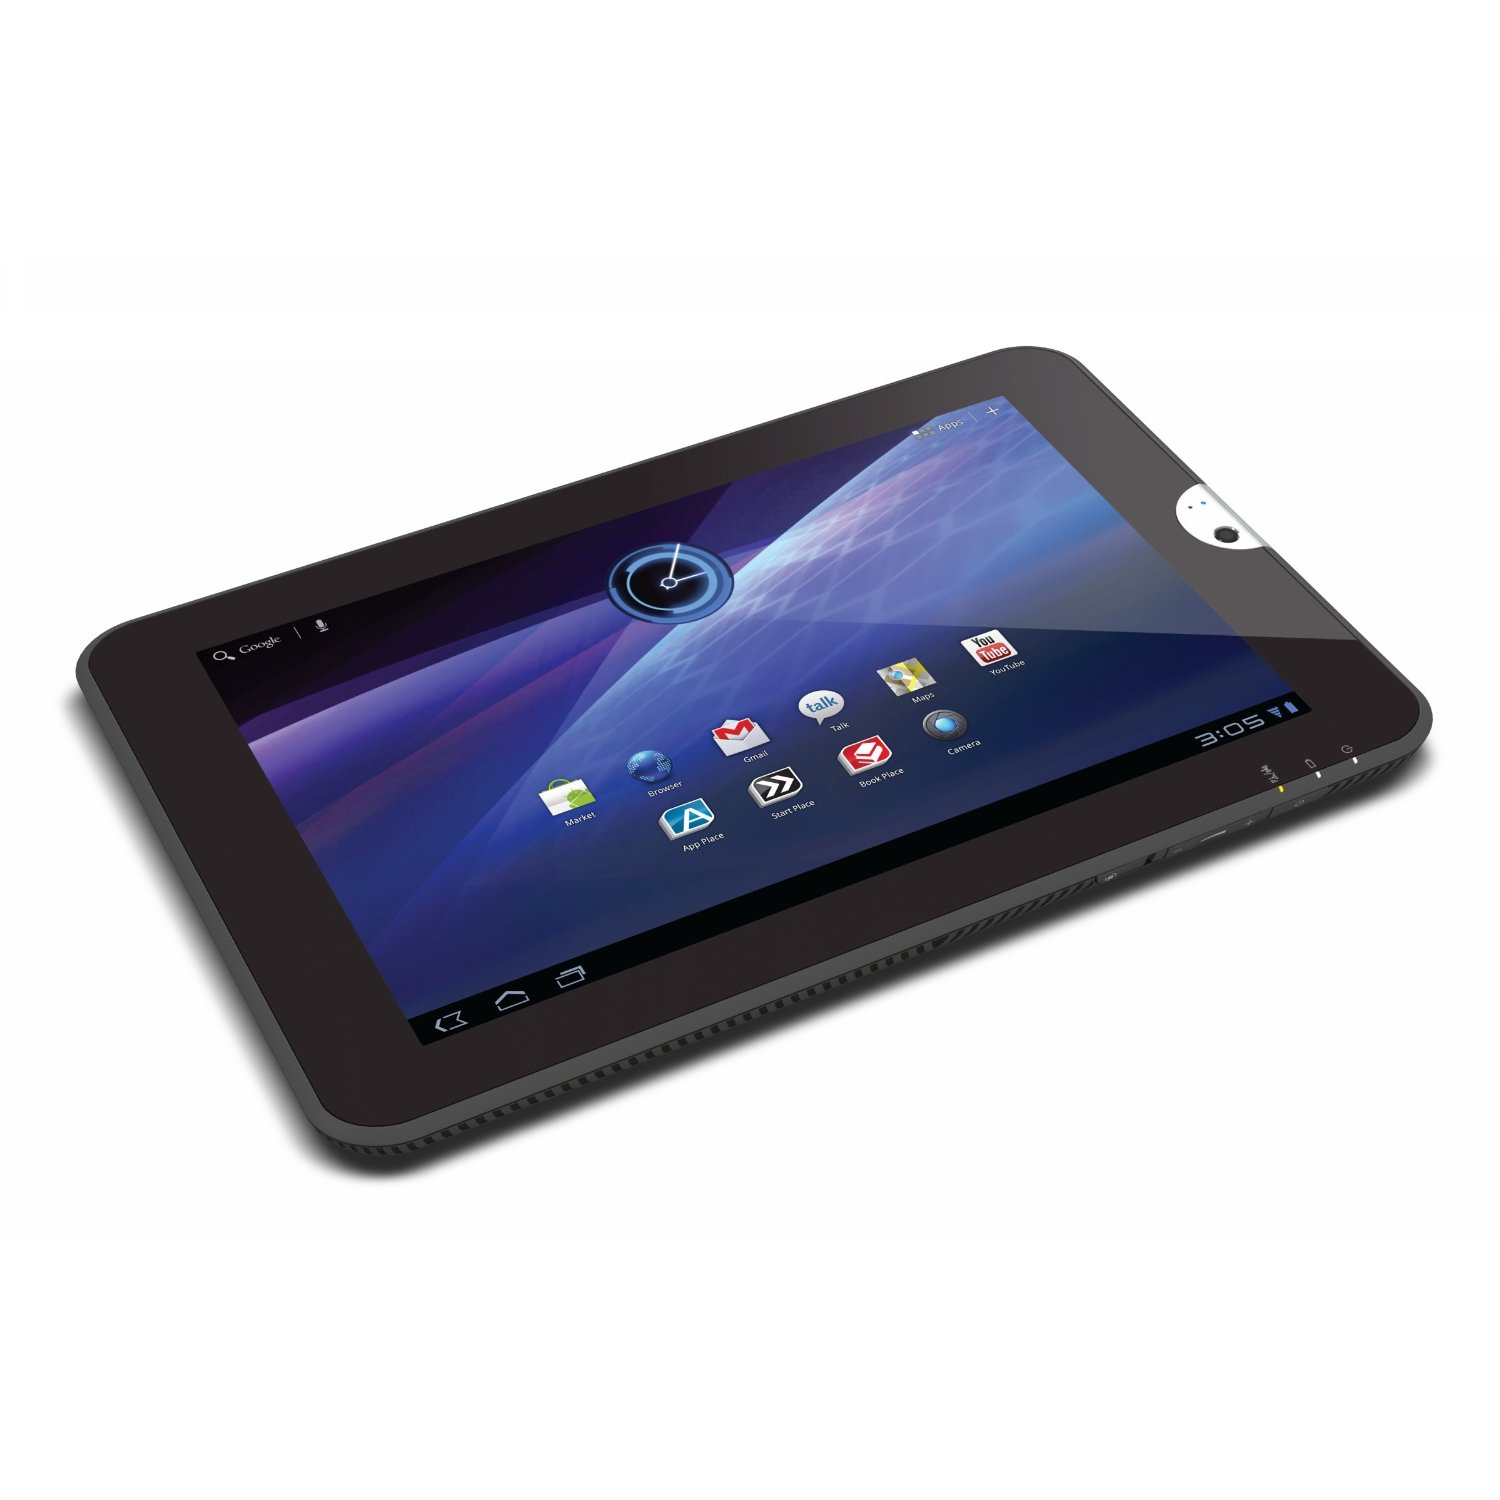 Toshiba Tablet 10 Inch 10.1-inch Android Tablet